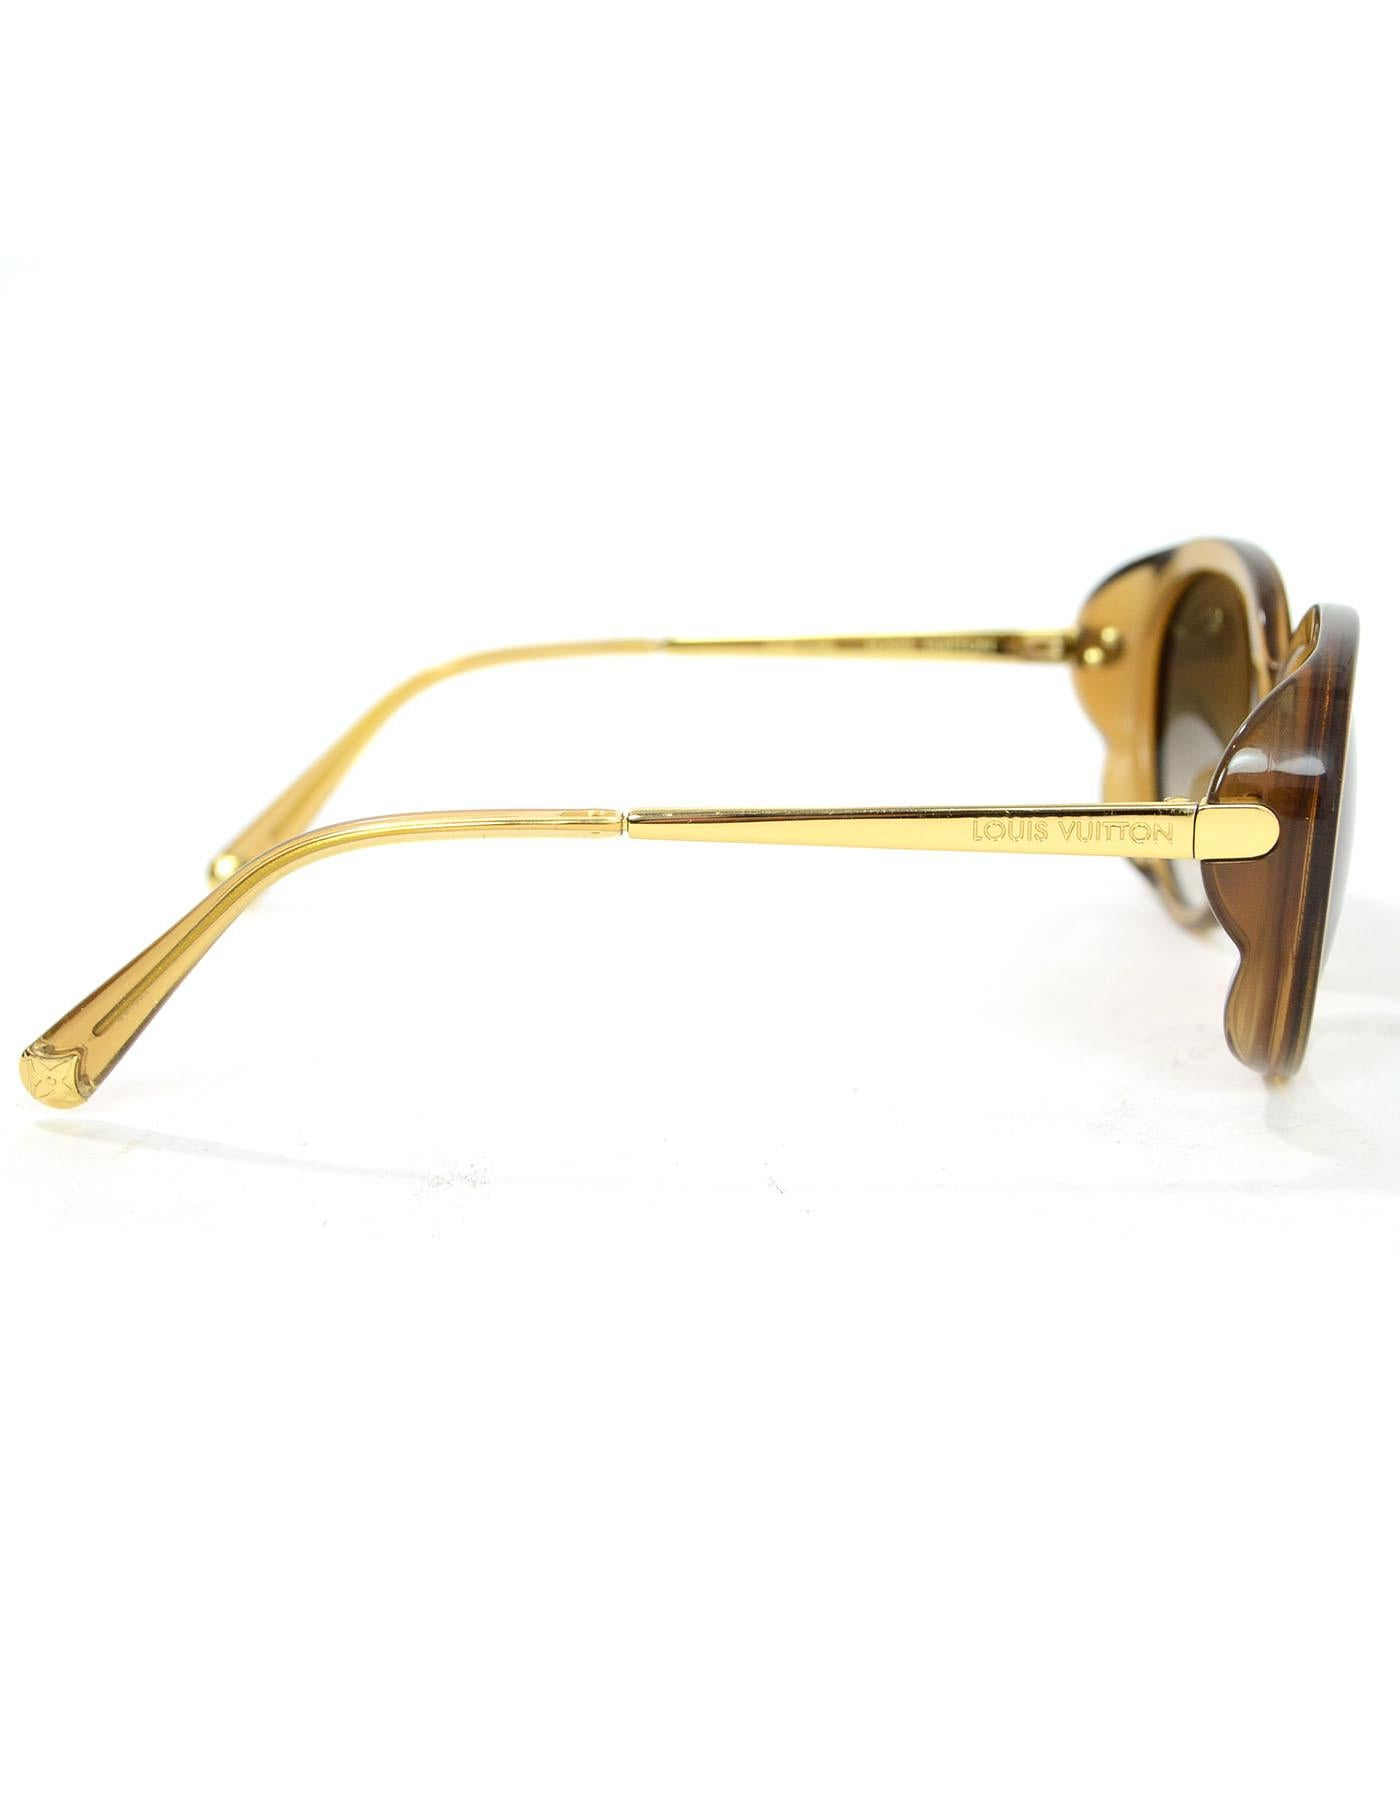 fcb89c198888 Louis Vuitton Honey Glitter Acetate Bluebell Sunglasses with Case For Sale  at 1stdibs